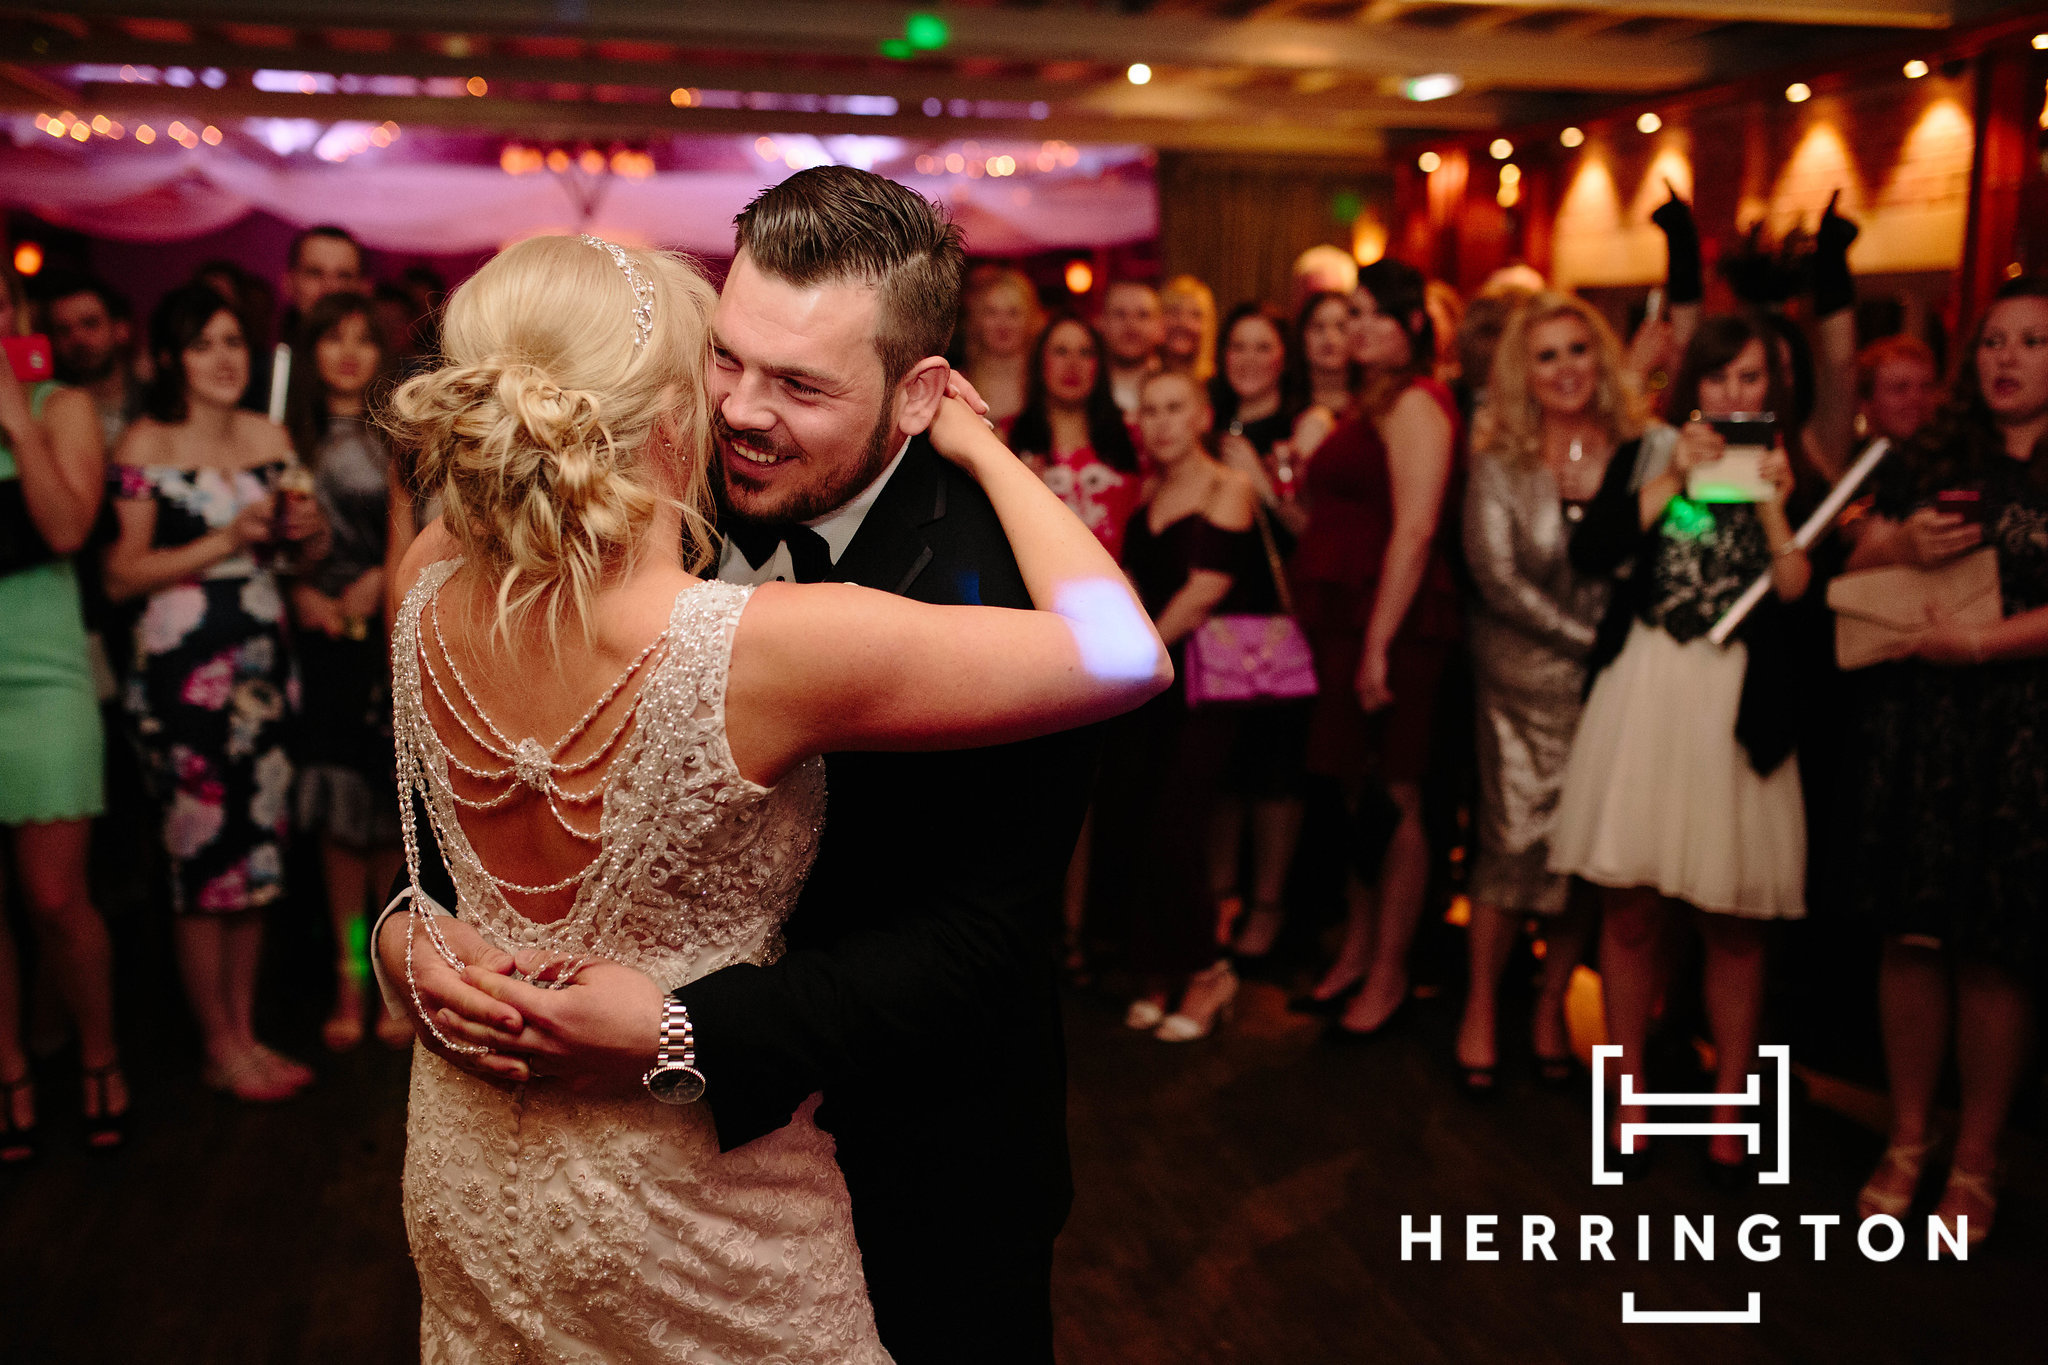 Matt Herrington wedding photographer Lancashire